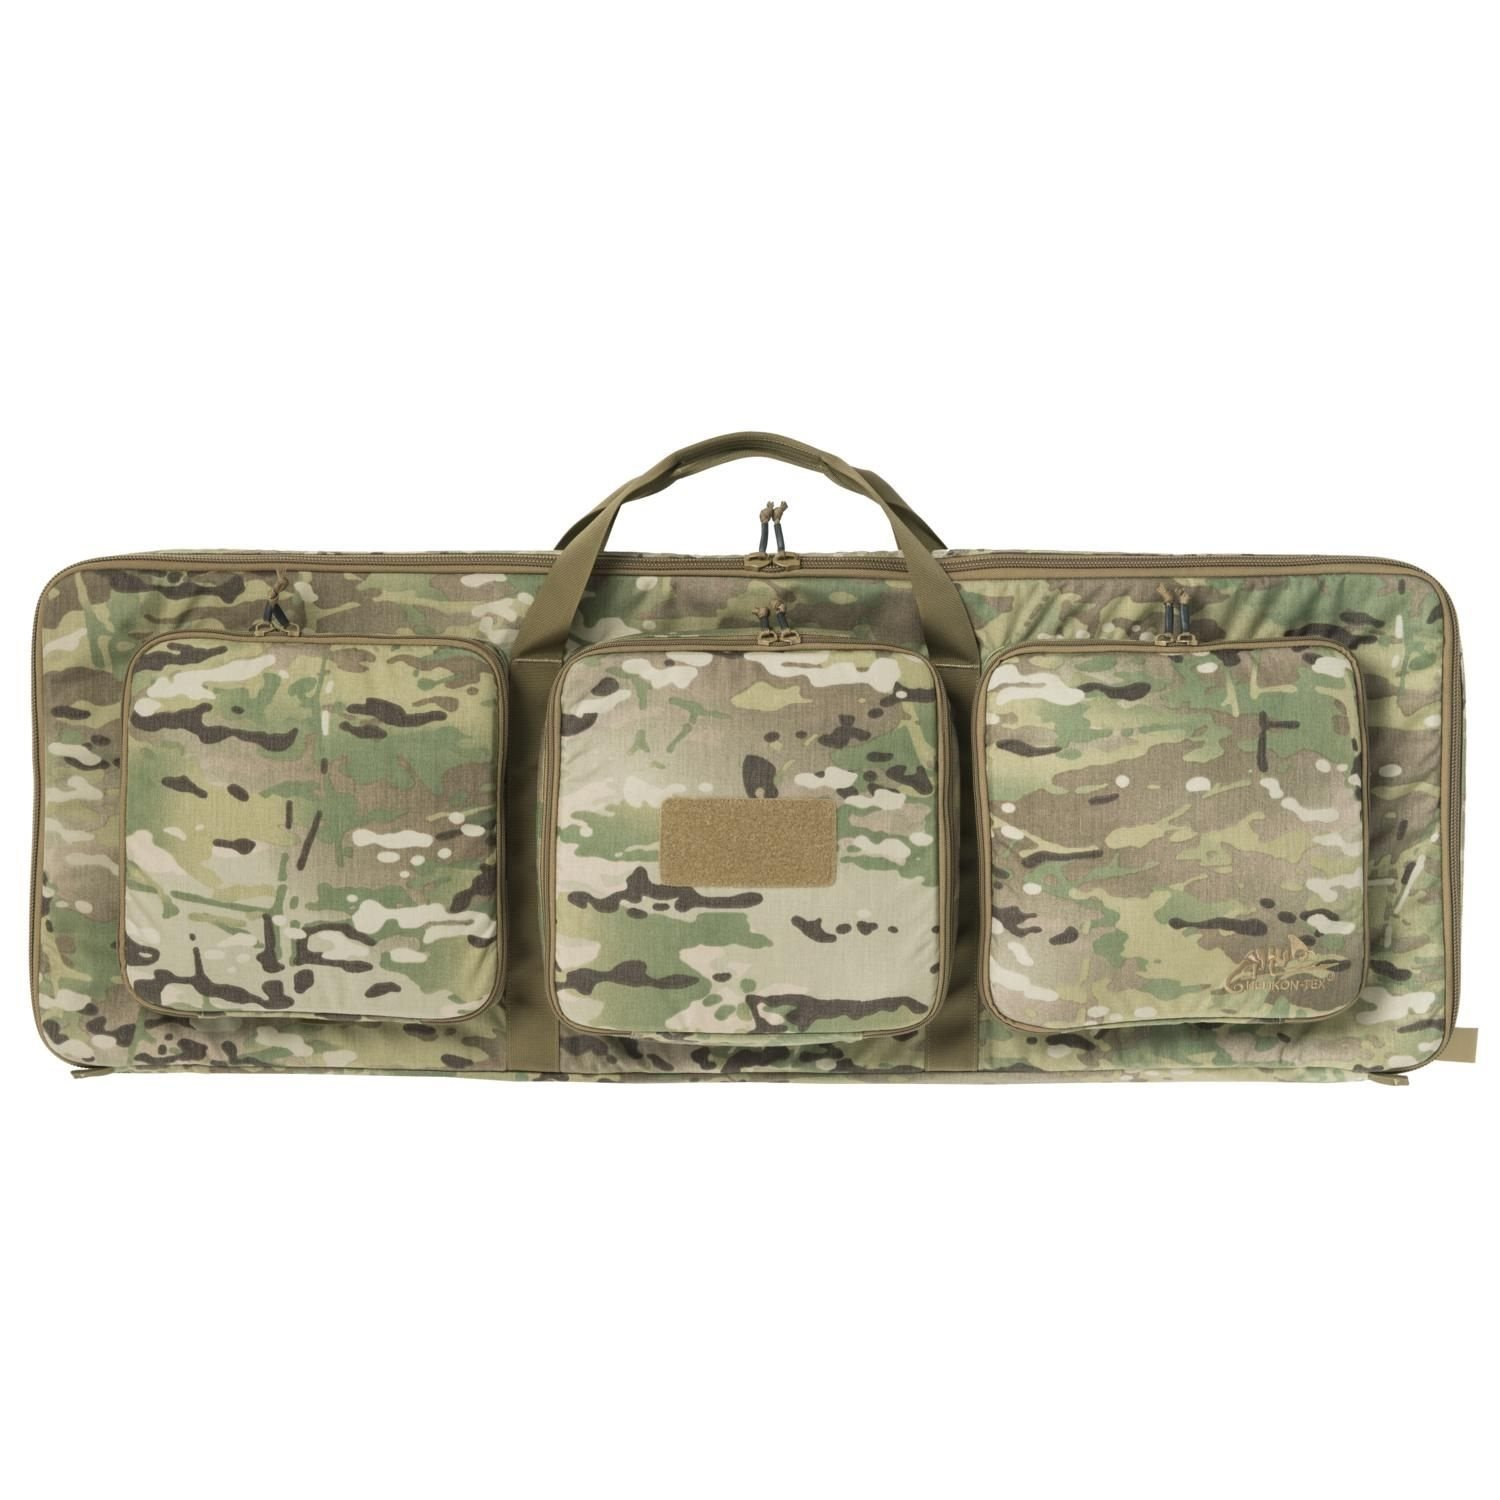 Puzdro na pušku RIFLE BAG 18® MULTICAM®